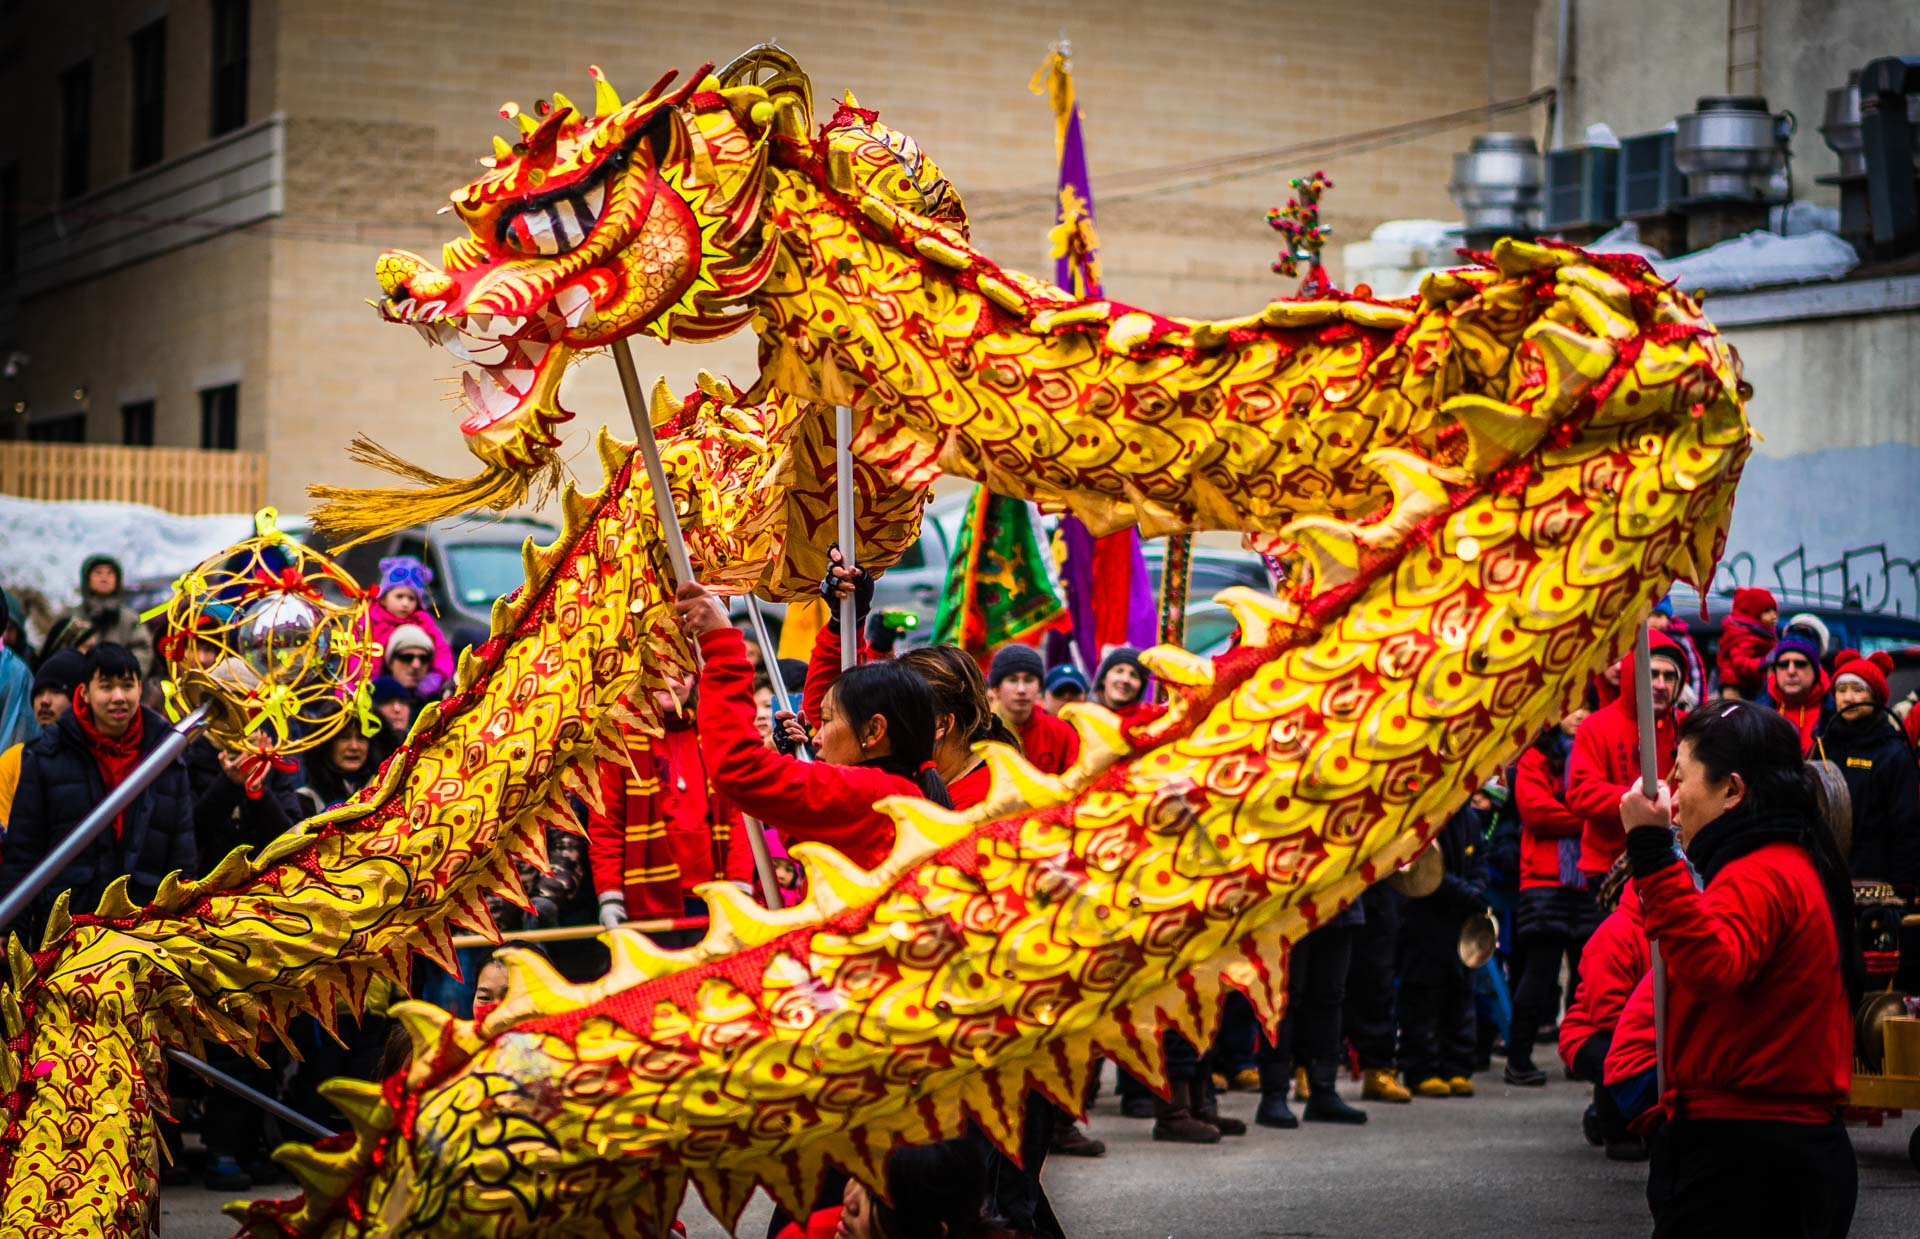 photos chinese new year celebrated with lion dances in bostons chinatown - When Is Chinese New Year Celebrated